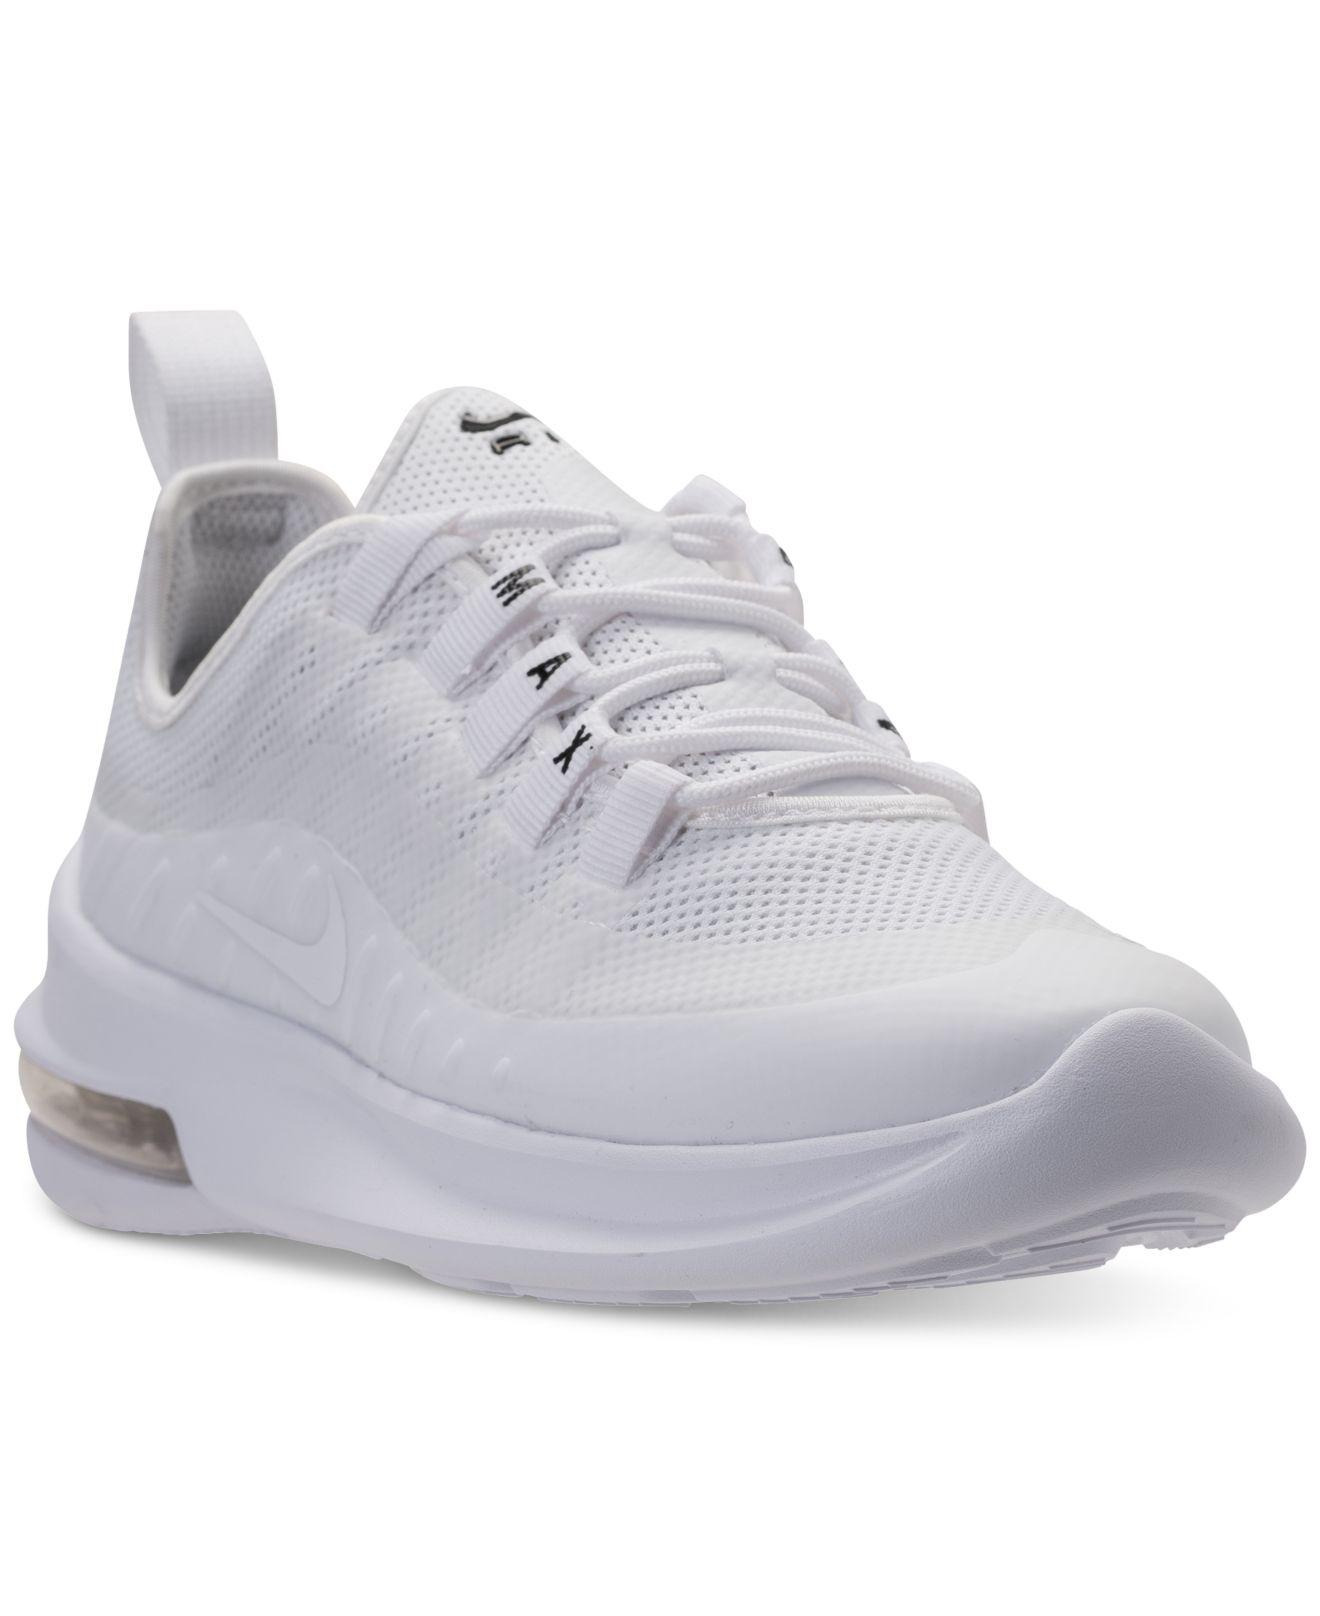 detailed look 2604c d4893 Nike Air Max Axis Casual Sneakers From Finish Line in White - Lyst